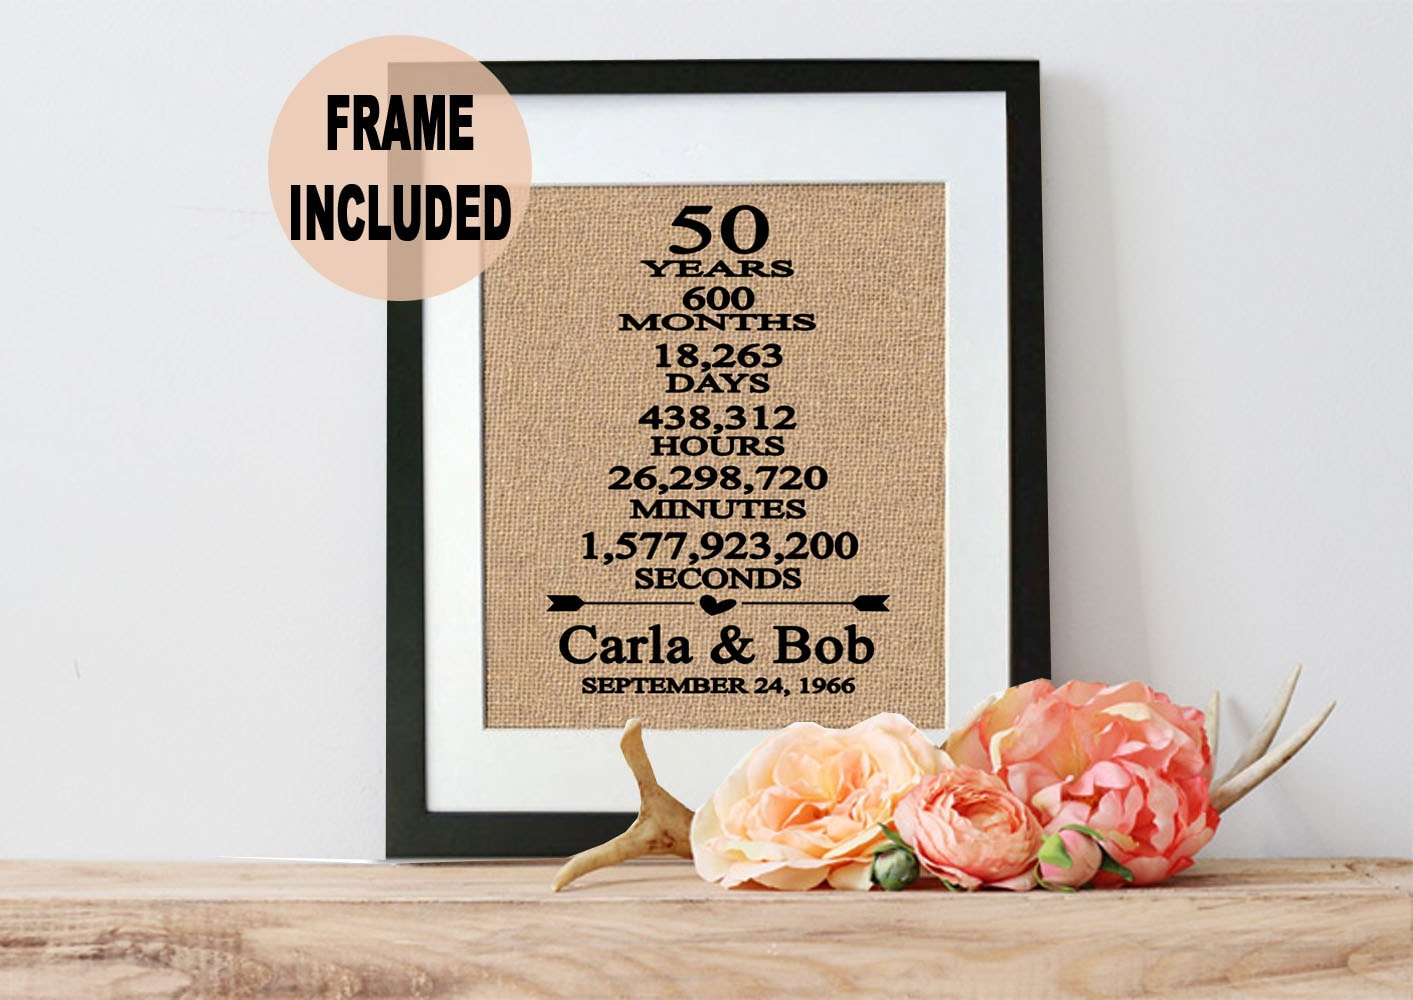 Gifts For Fiftieth Wedding Anniversary: 50th Wedding Anniversary Gift/ 50th Anniversary Gift/ 50 Years